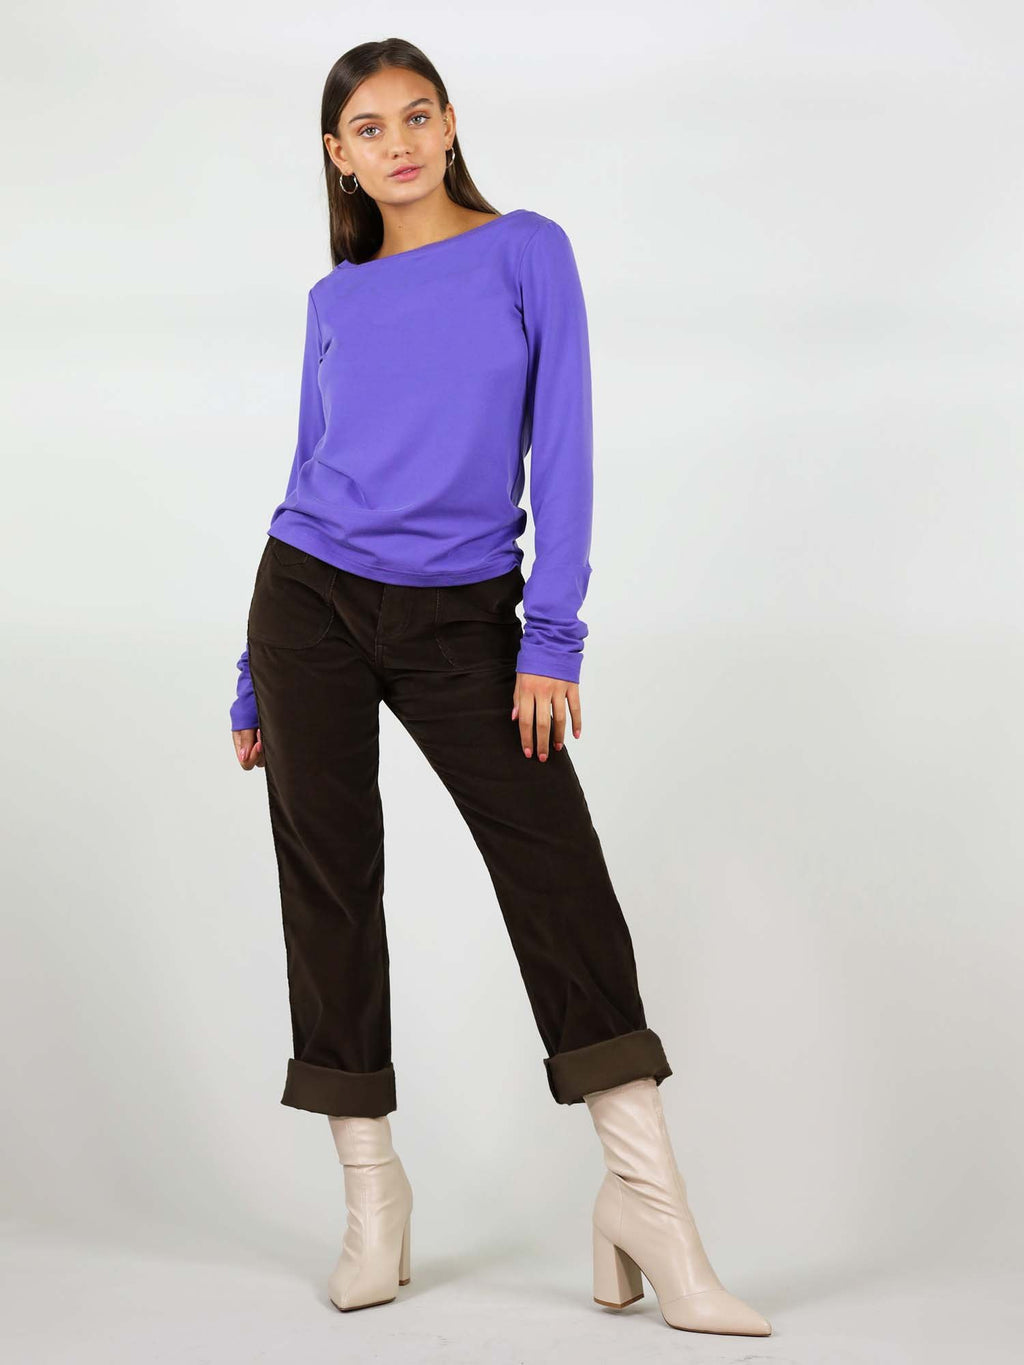 The purple Sunday blouse has regular fit and it is a heavy-weight top. Round neck and extra long sleeves.